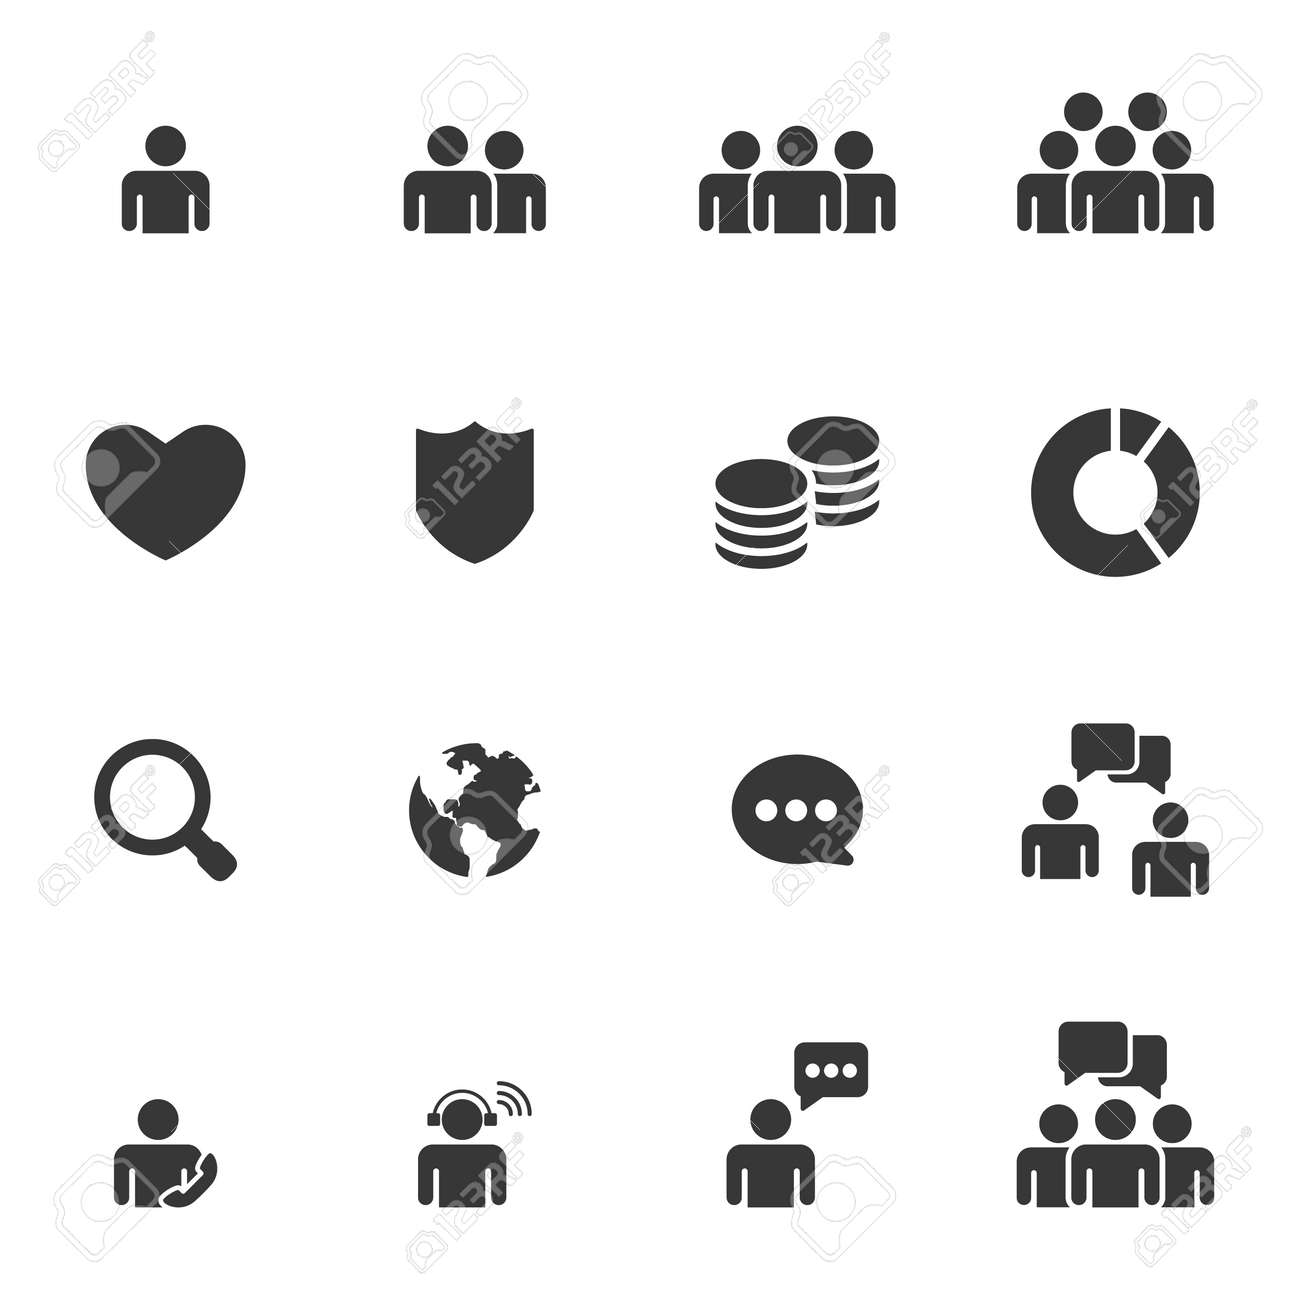 People Icons Business Vector - 155290282